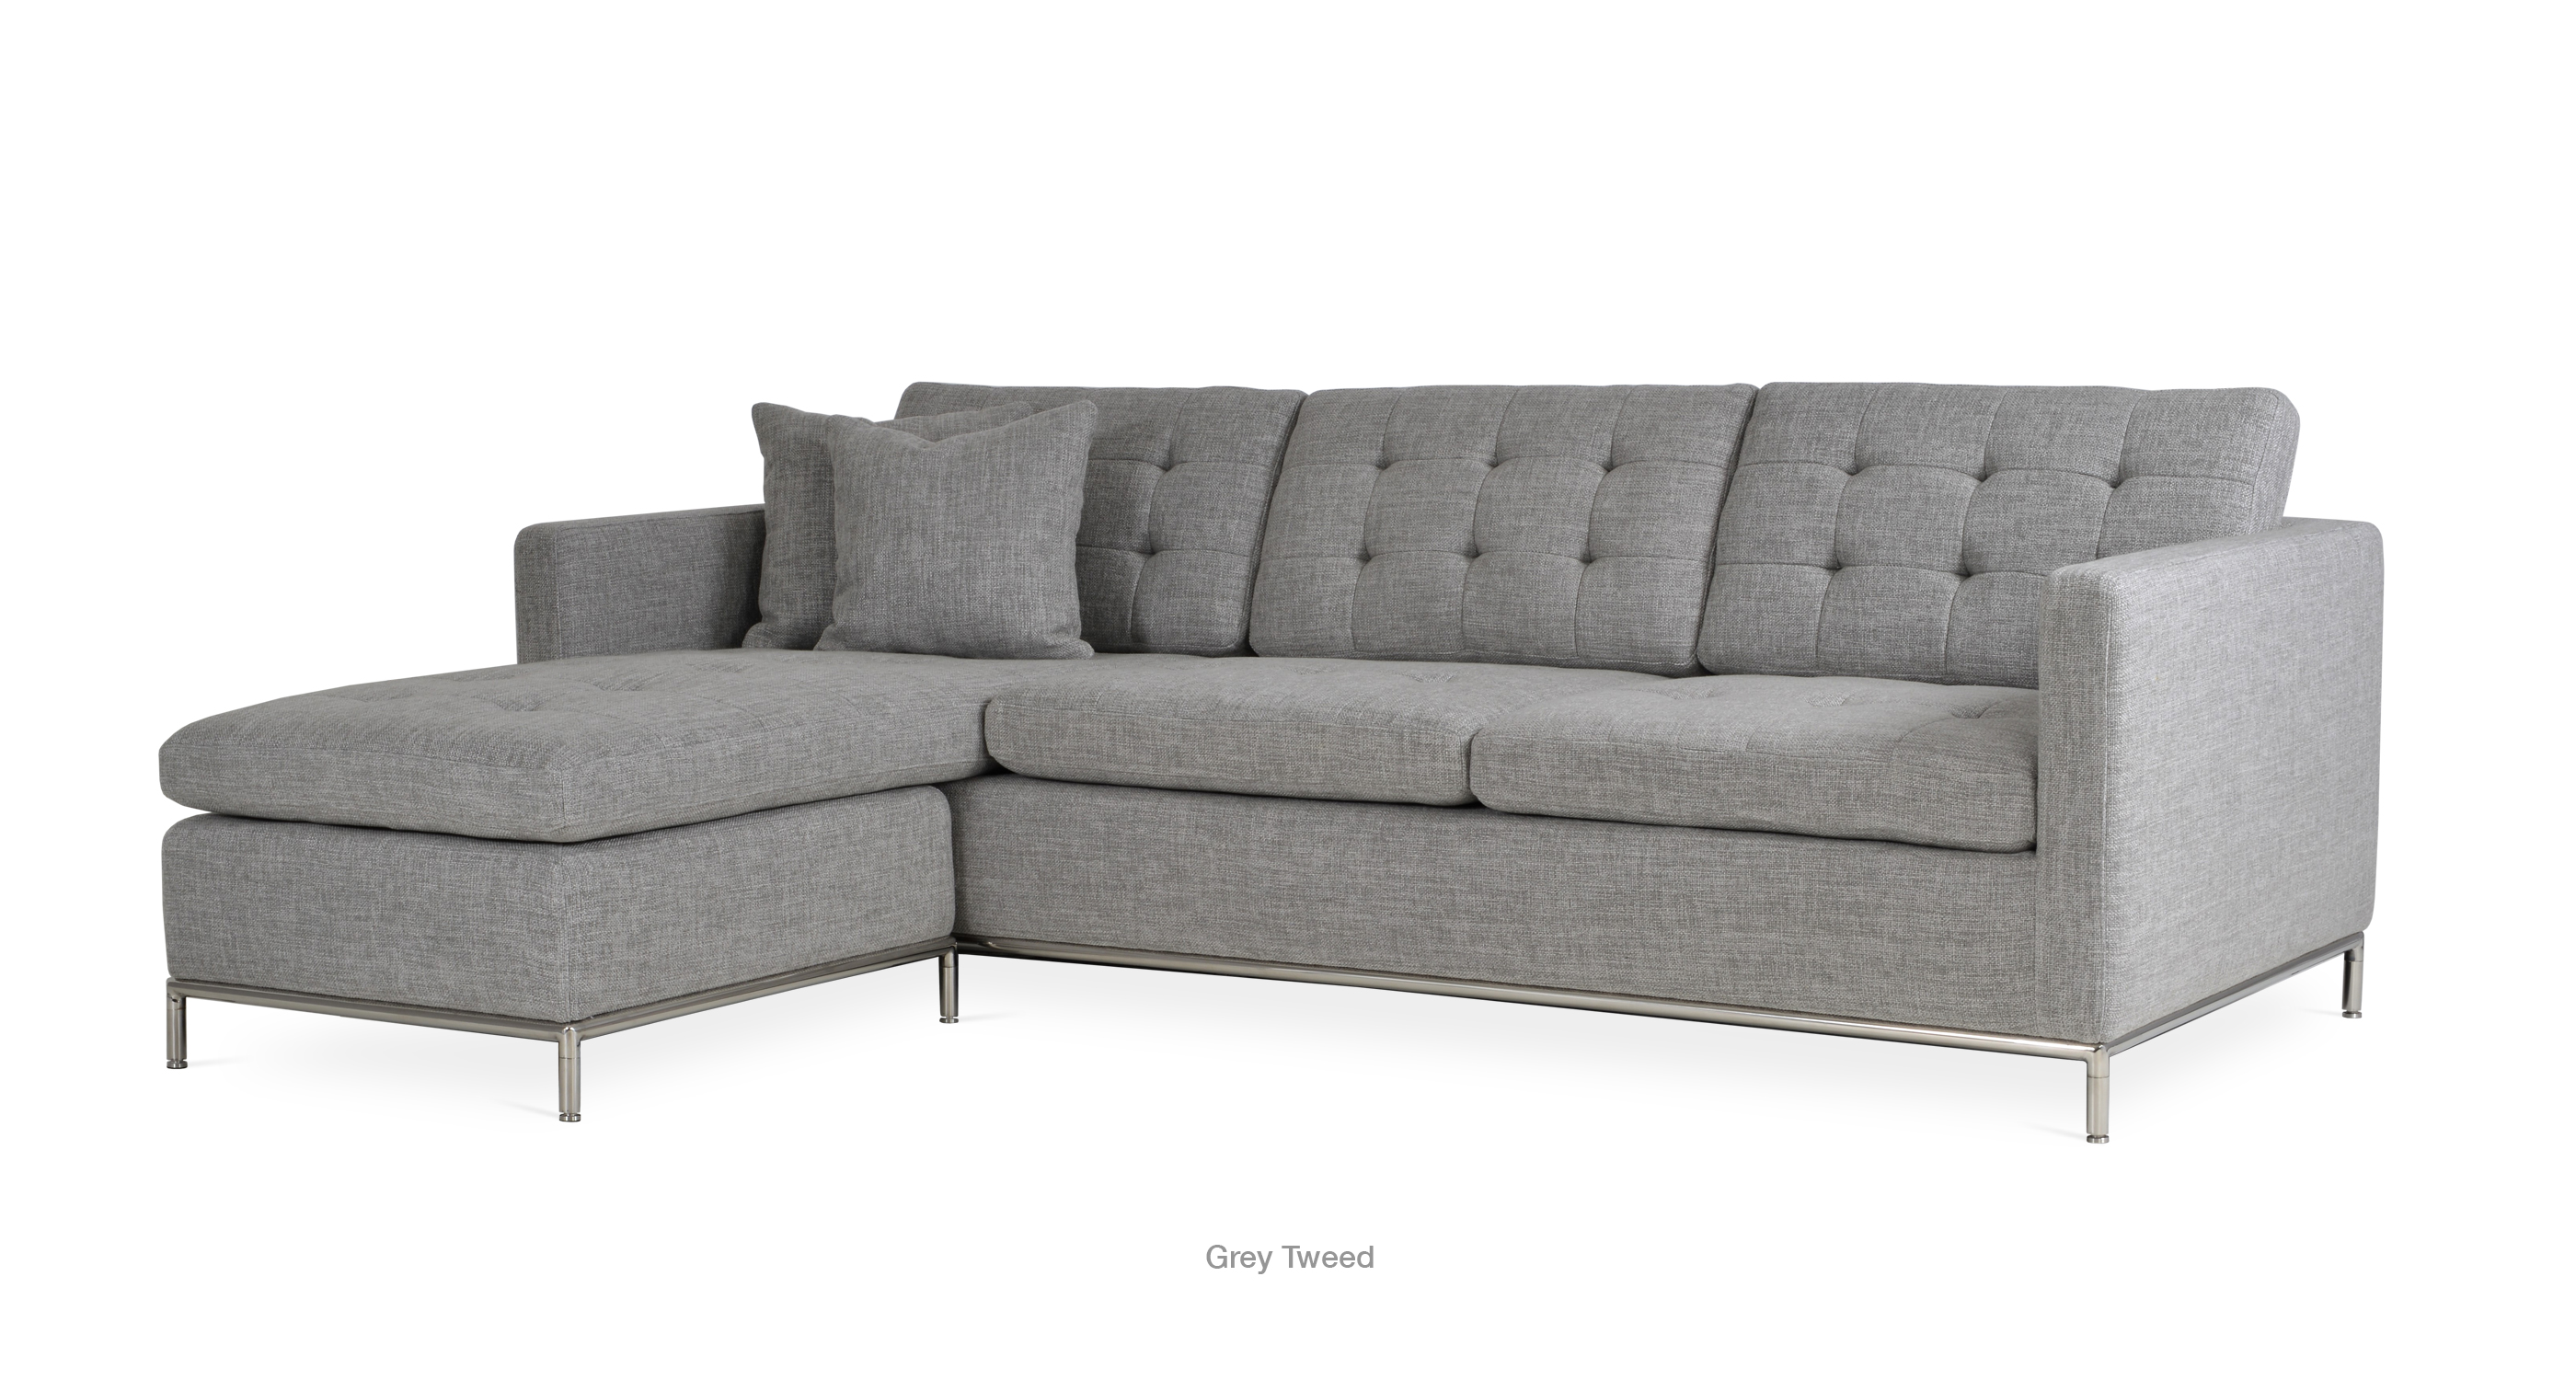 Incredible Taxim Contemporary Sectional Sofas Sohoconcept Download Free Architecture Designs Scobabritishbridgeorg